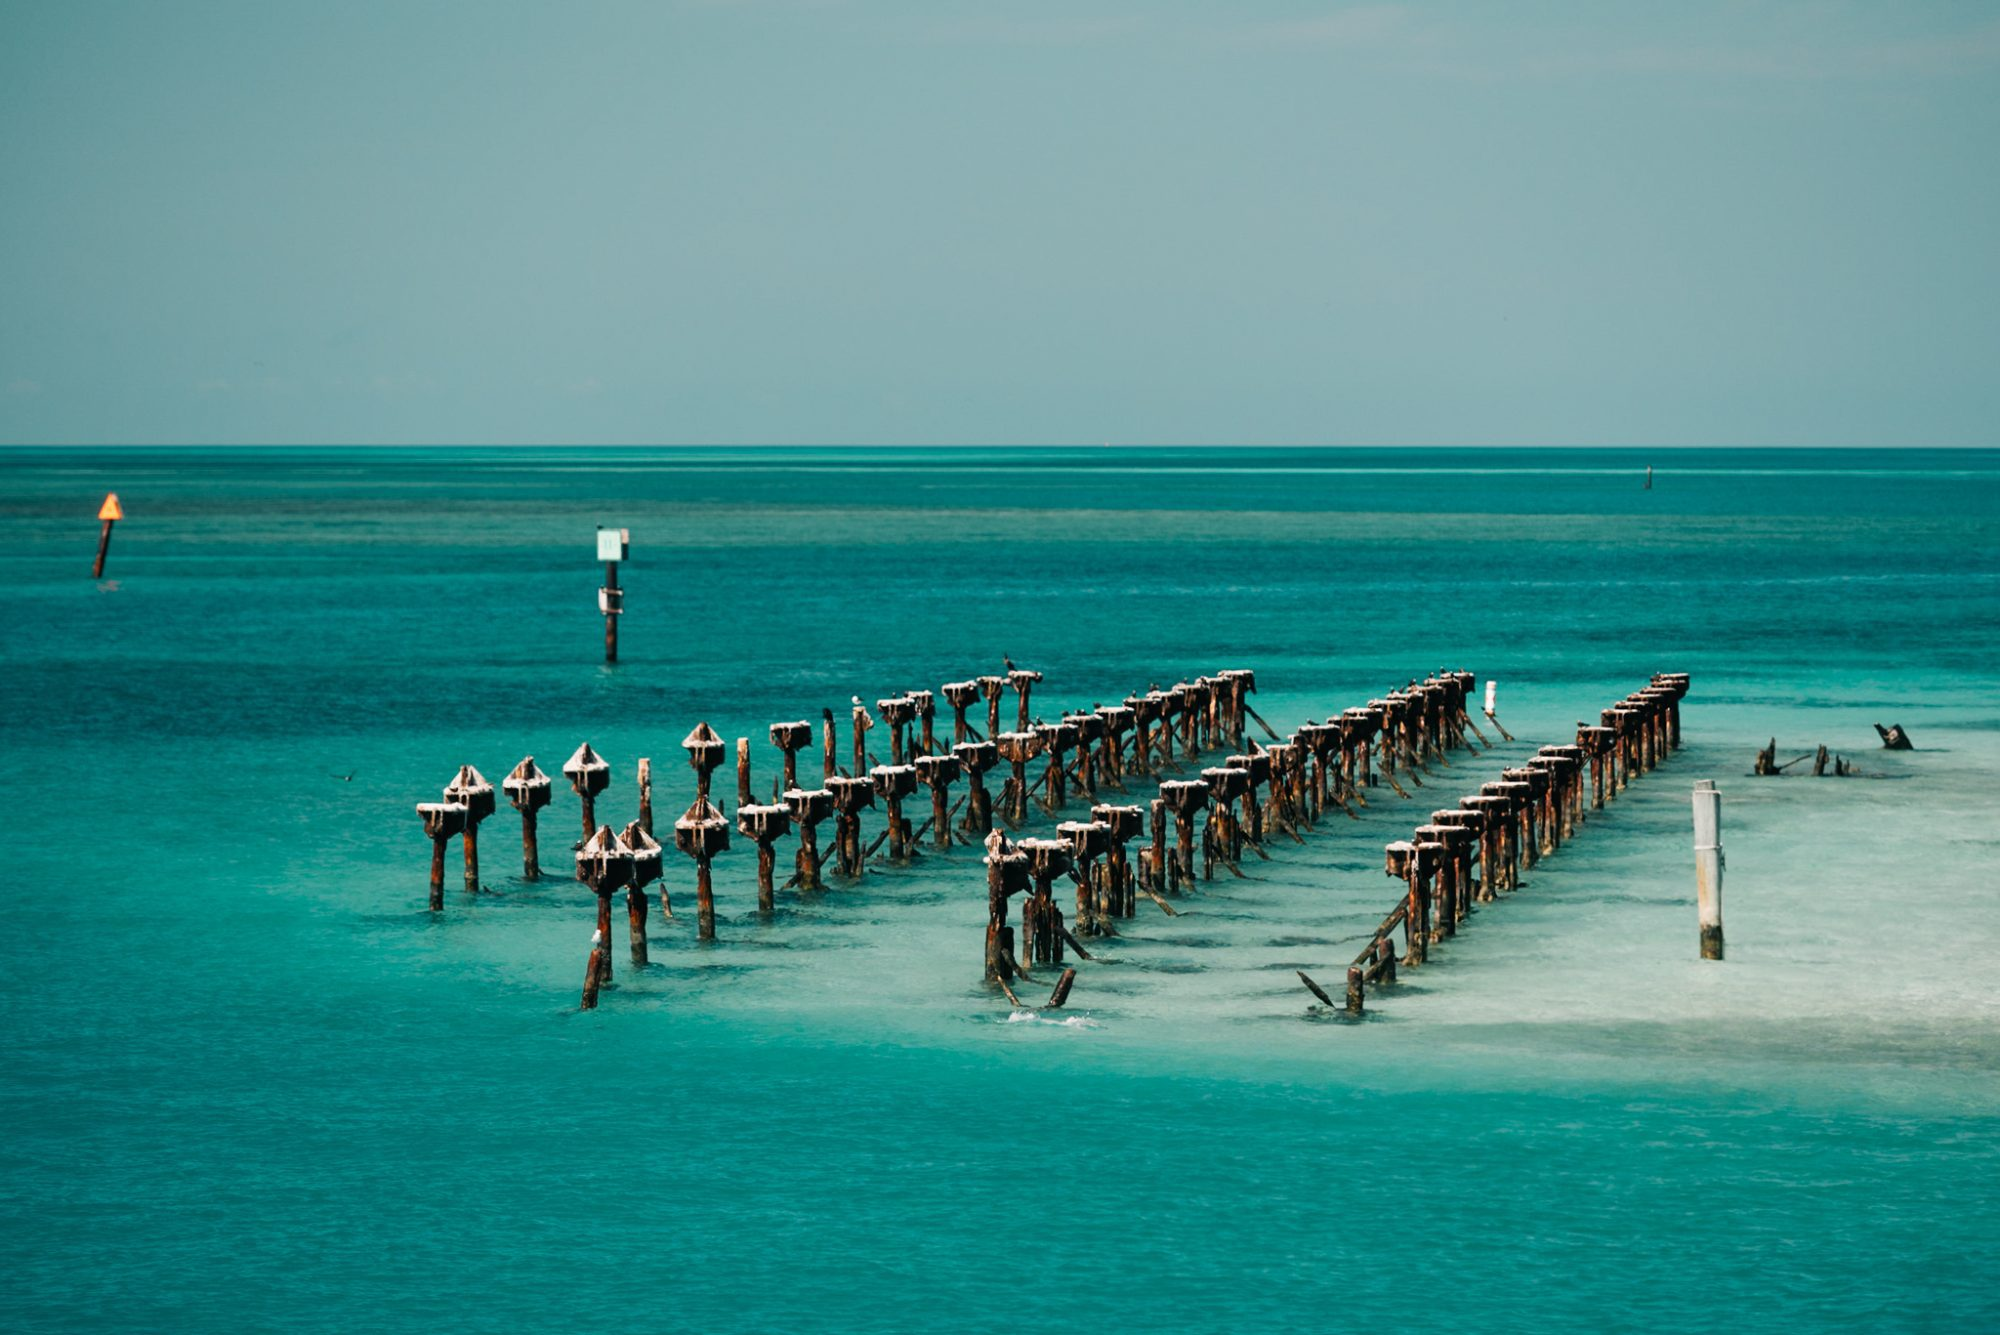 Foto By Freas Photography Staycation 2016 9 - An Island State of Mind - A Key West Photographer and His Backyard